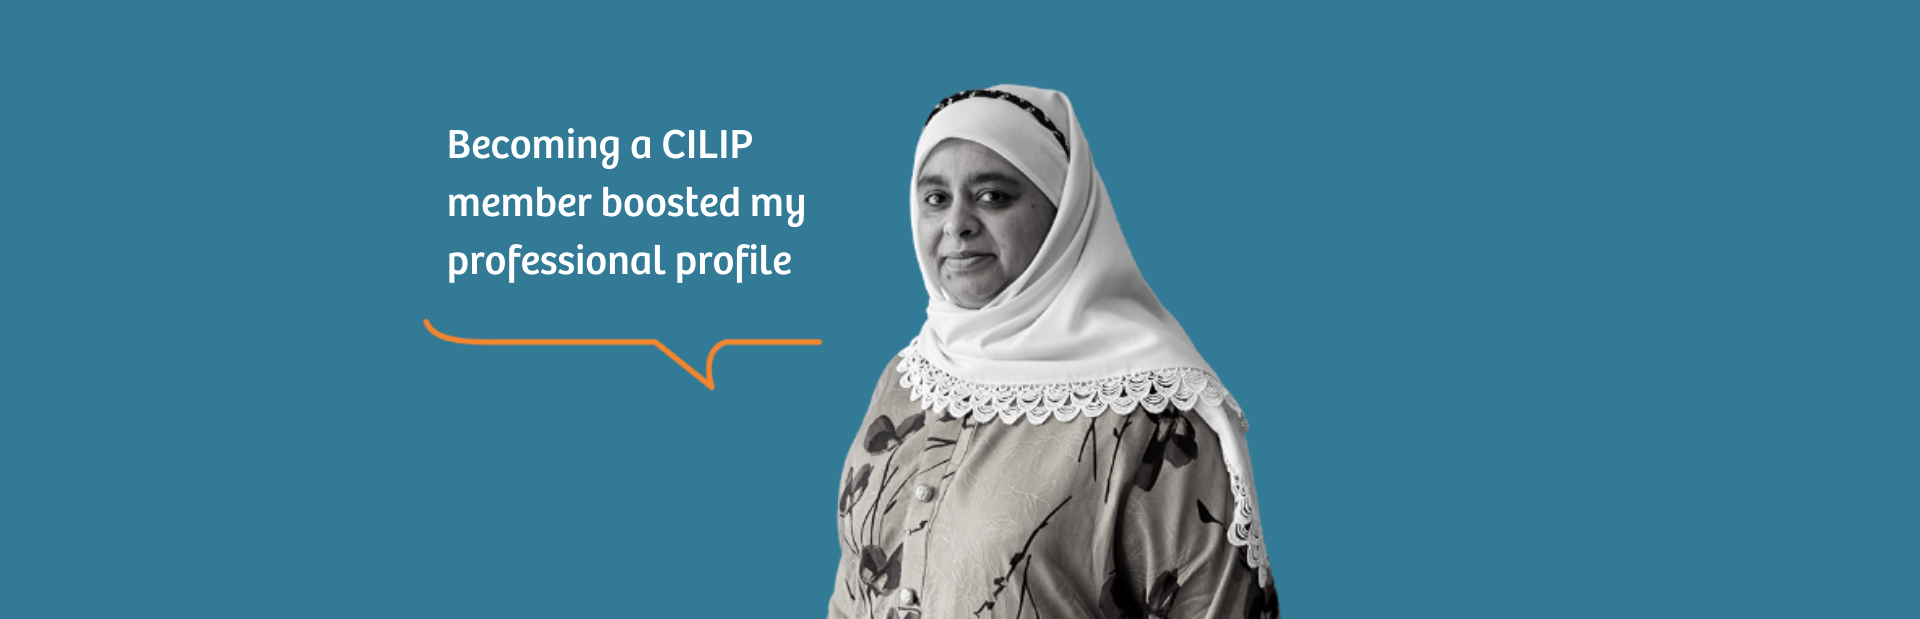 Becoming a CILIP member boosted my professional profile